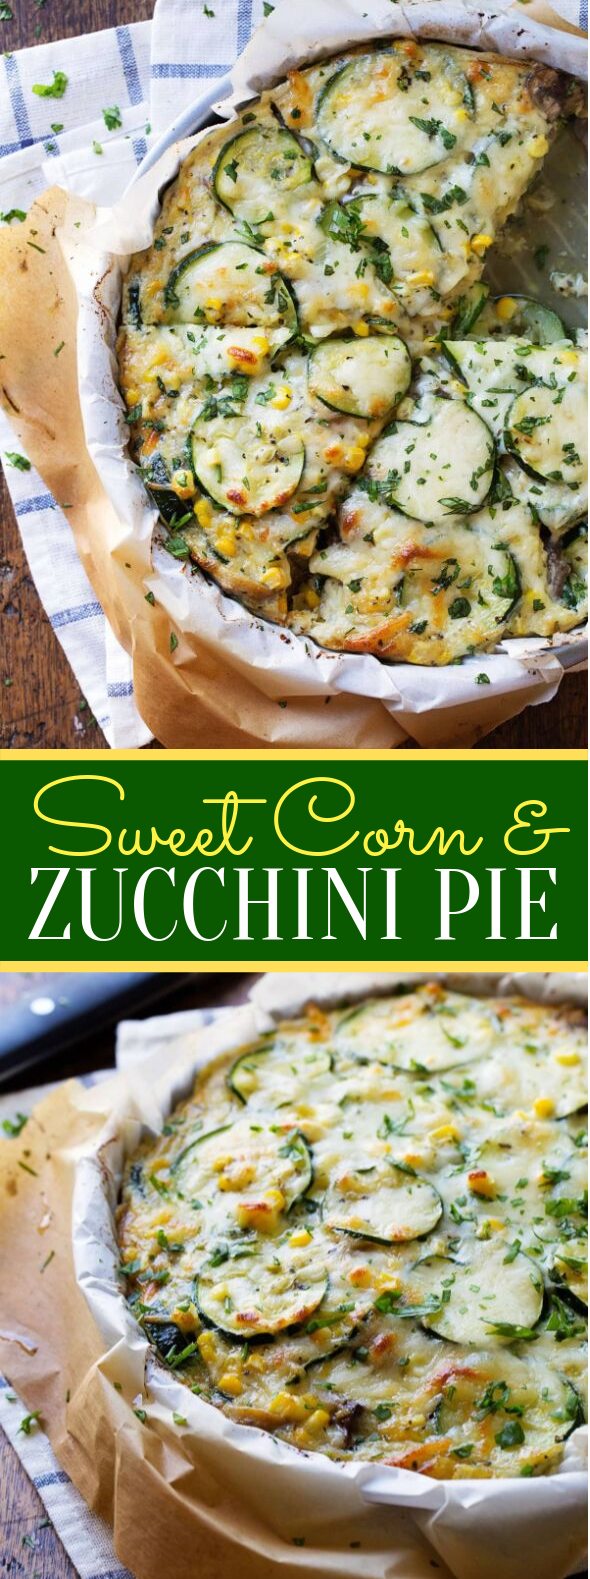 Sweet Corn and Zucchini Pie #vegetarian #glutenfree